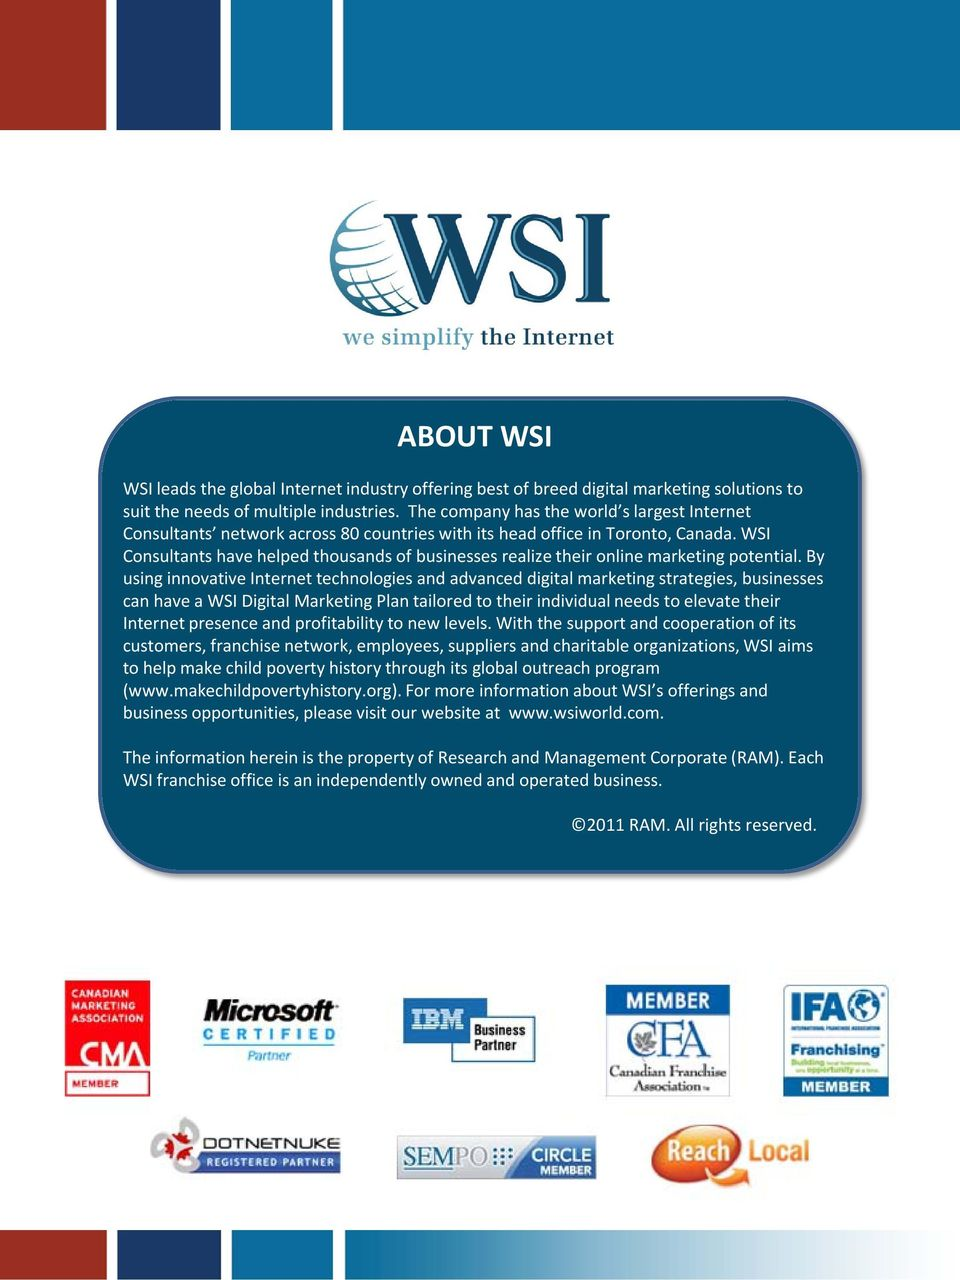 WSI Consultants have helped thousands of businesses realize their online marketing potential.